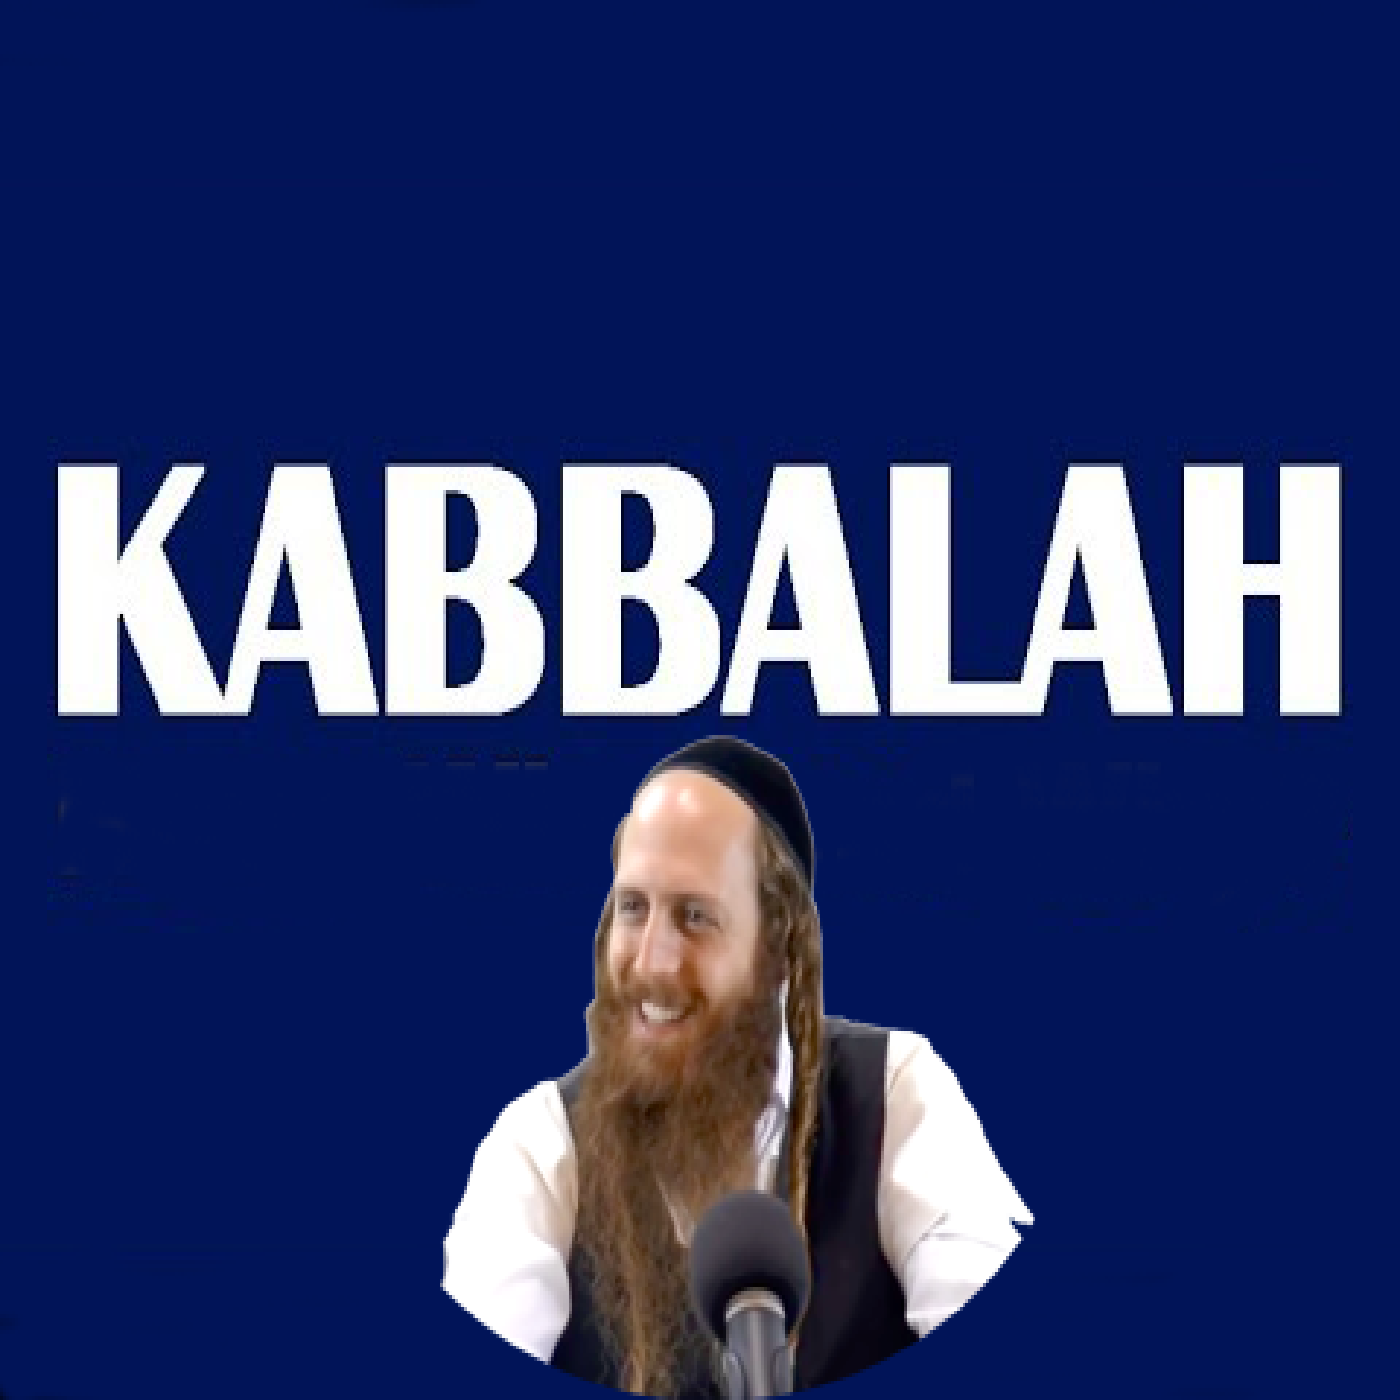 Artwork for 24hr Torah Learning Channel SPECIAL BROADCAST